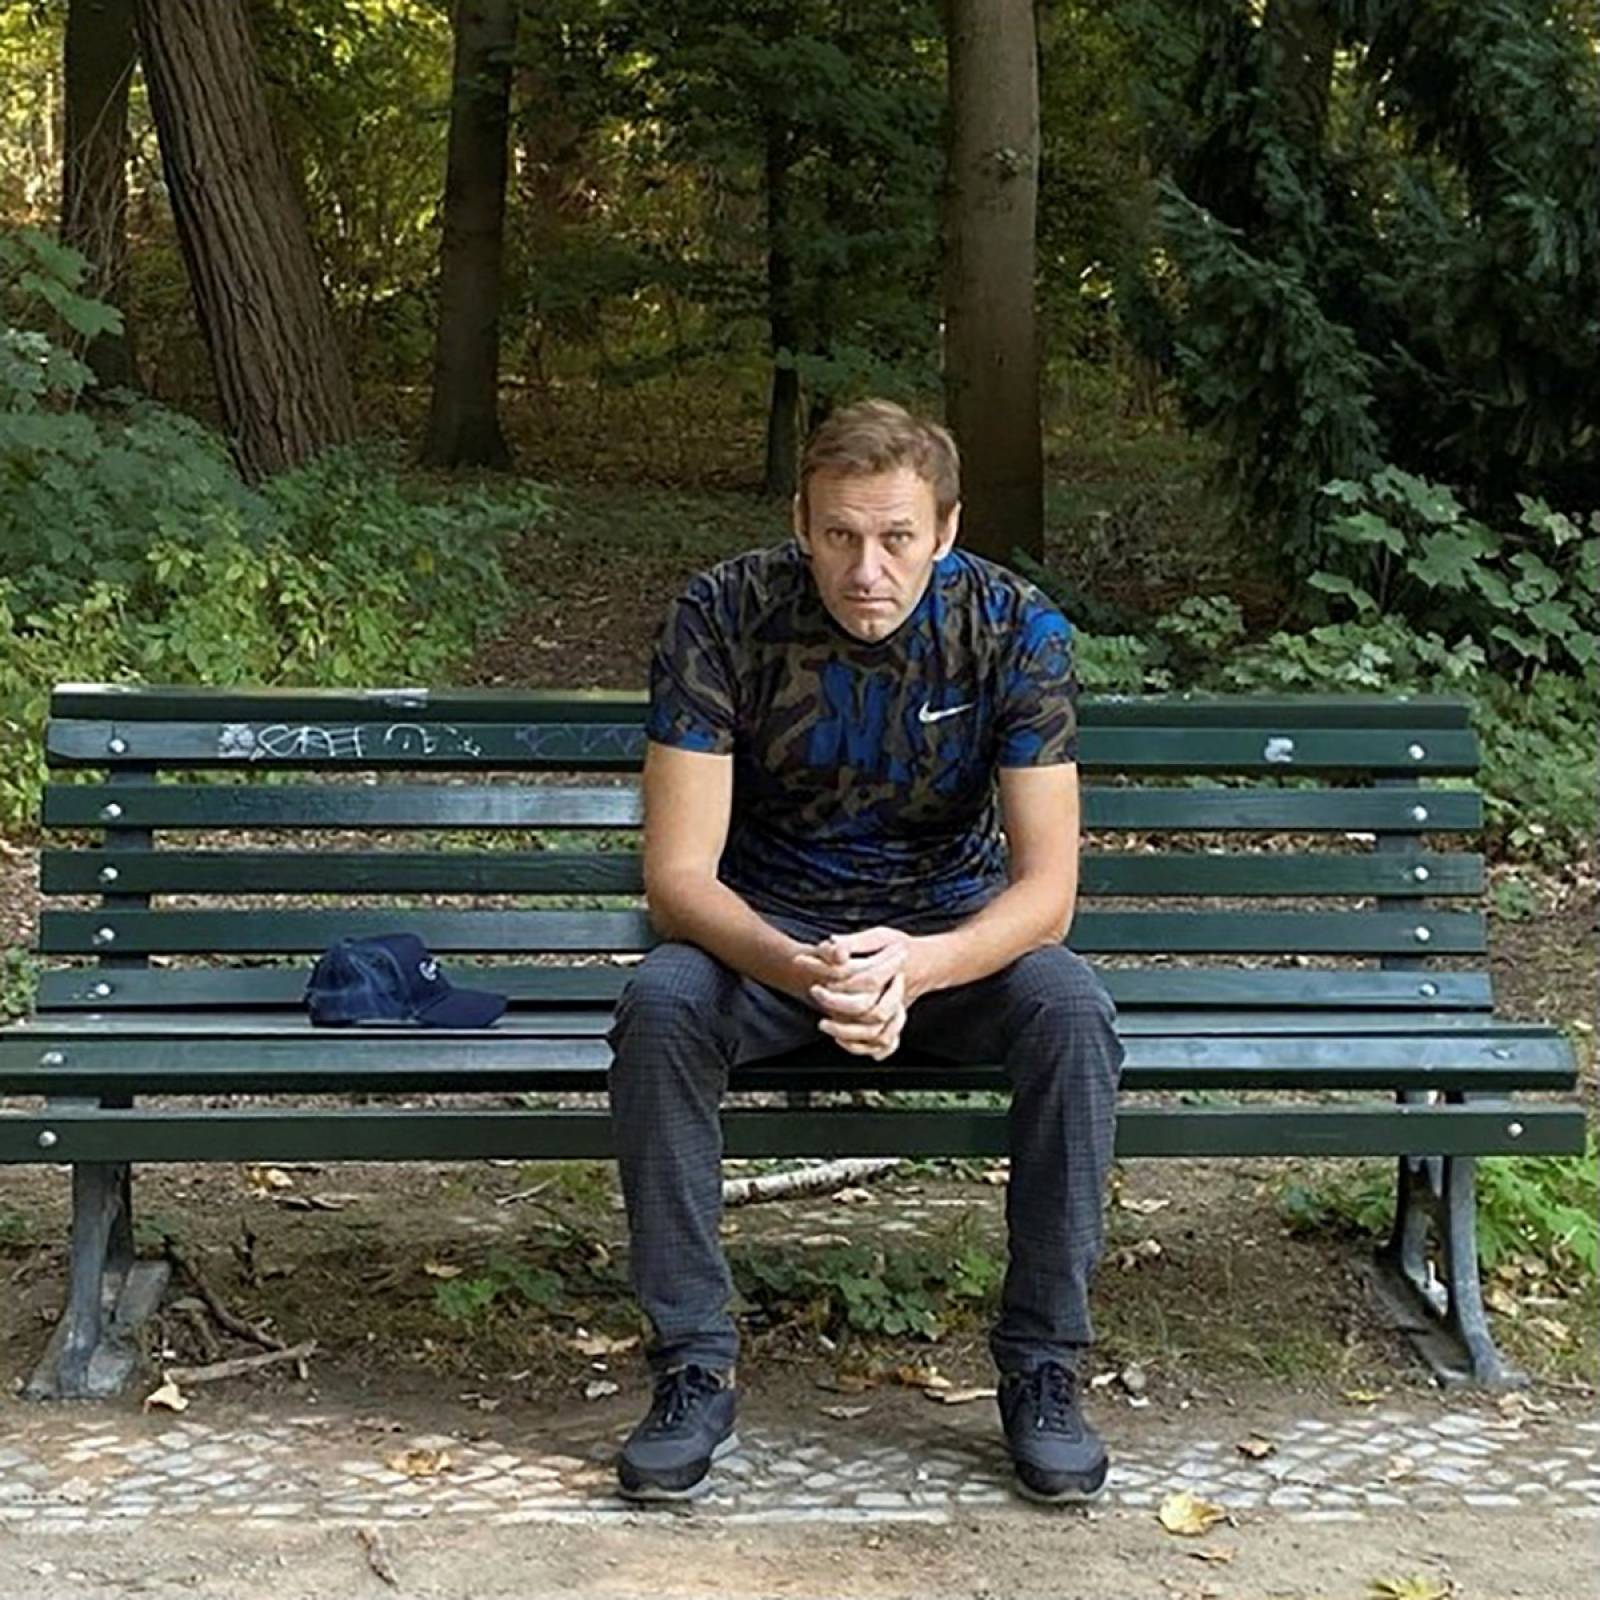 Russian opposition politician Alexei Navalny poses for a picture in Berlin